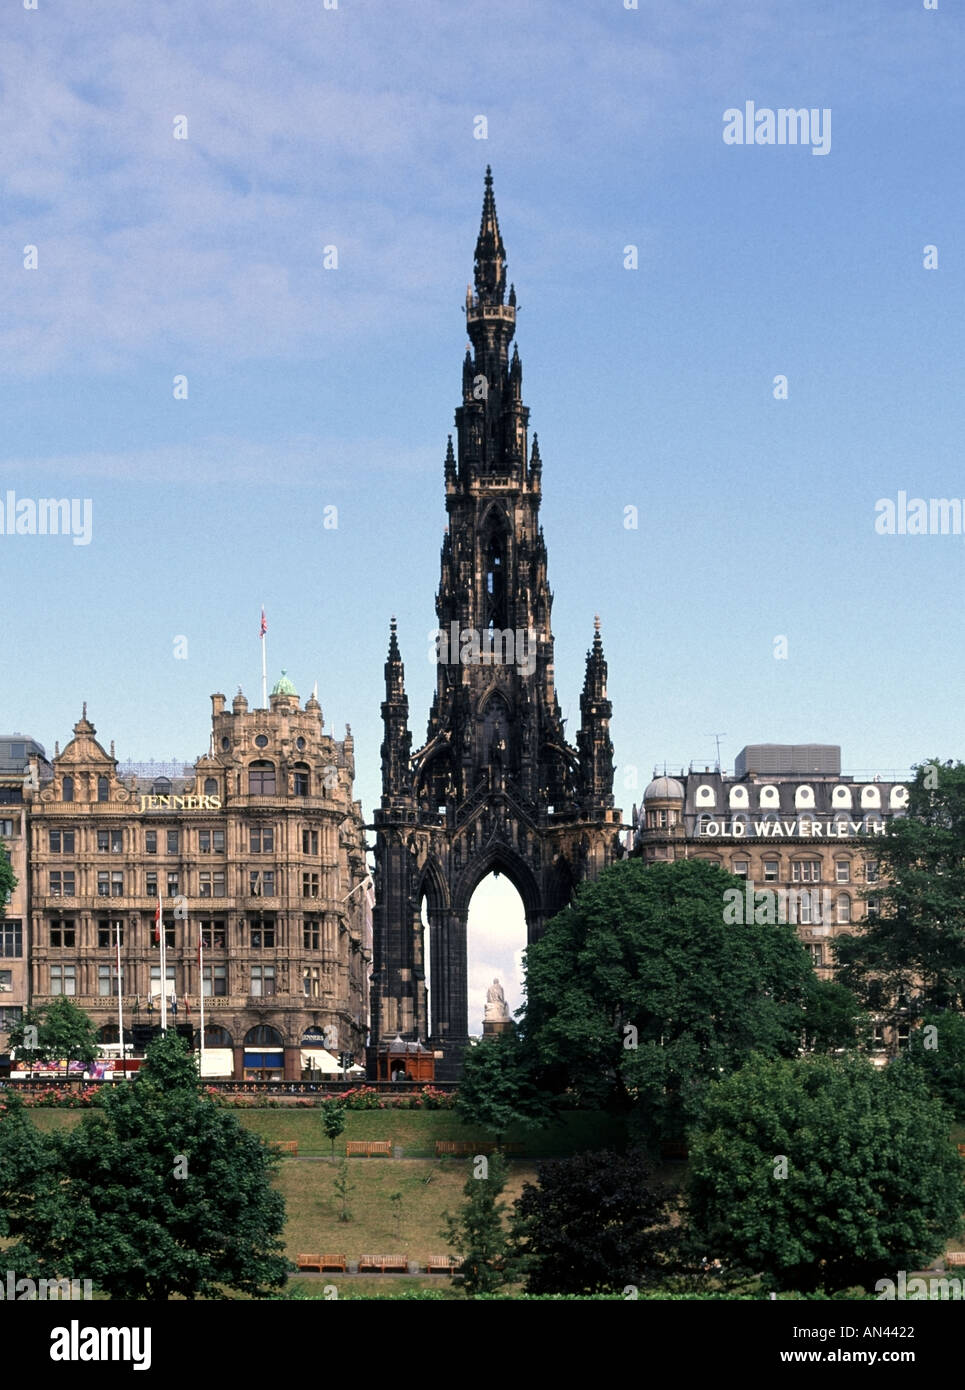 City of Edinburgh monument to Sir Walter Scott with store and hotel on Princes Street Scotland UK - Stock Image